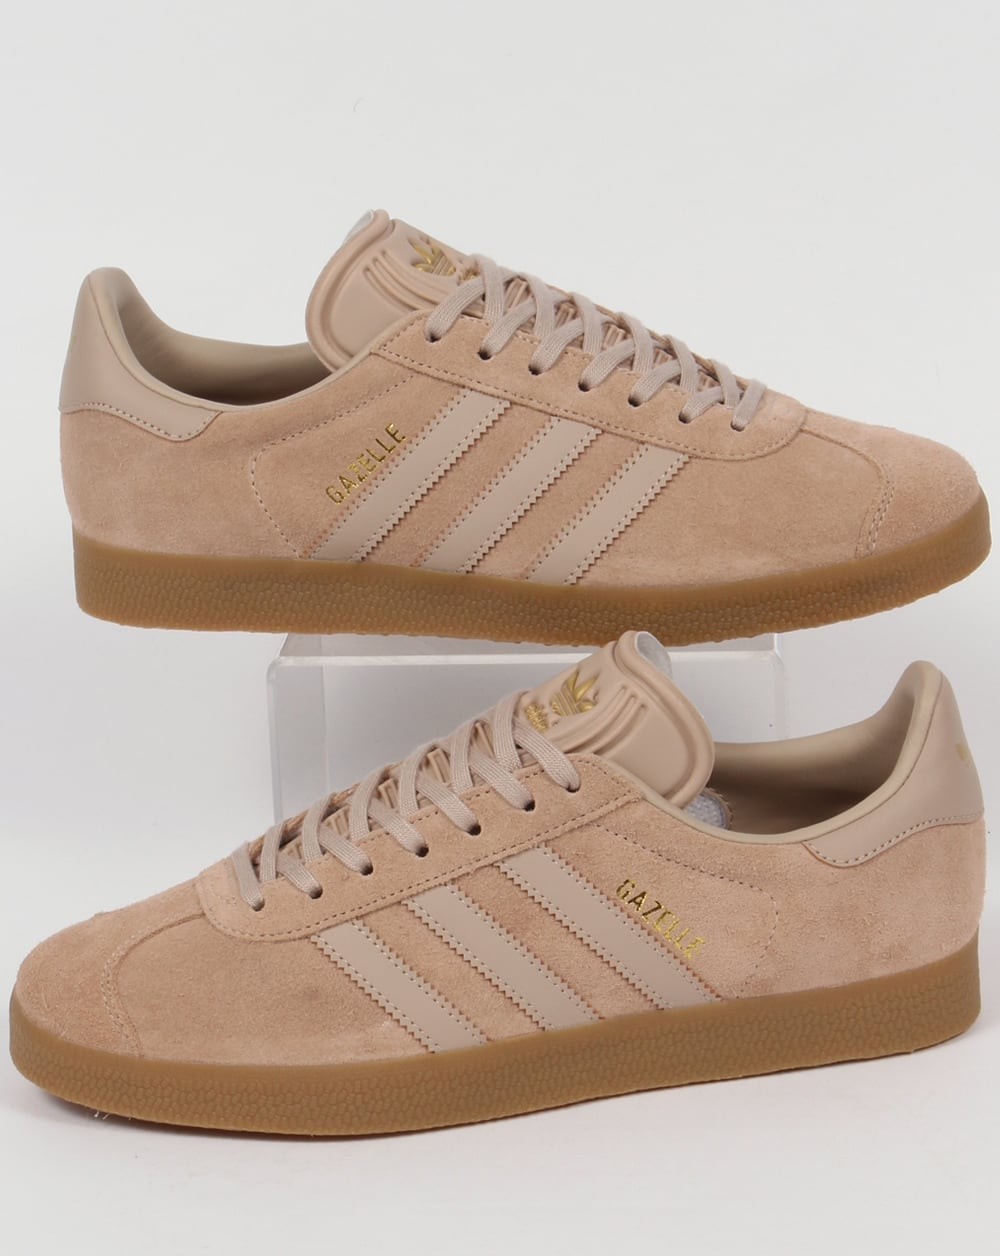 Opcional Malentendido Grave  mens brown adidas trainers Online Shopping for Women, Men, Kids Fashion &  Lifestyle|Free Delivery & Returns! -